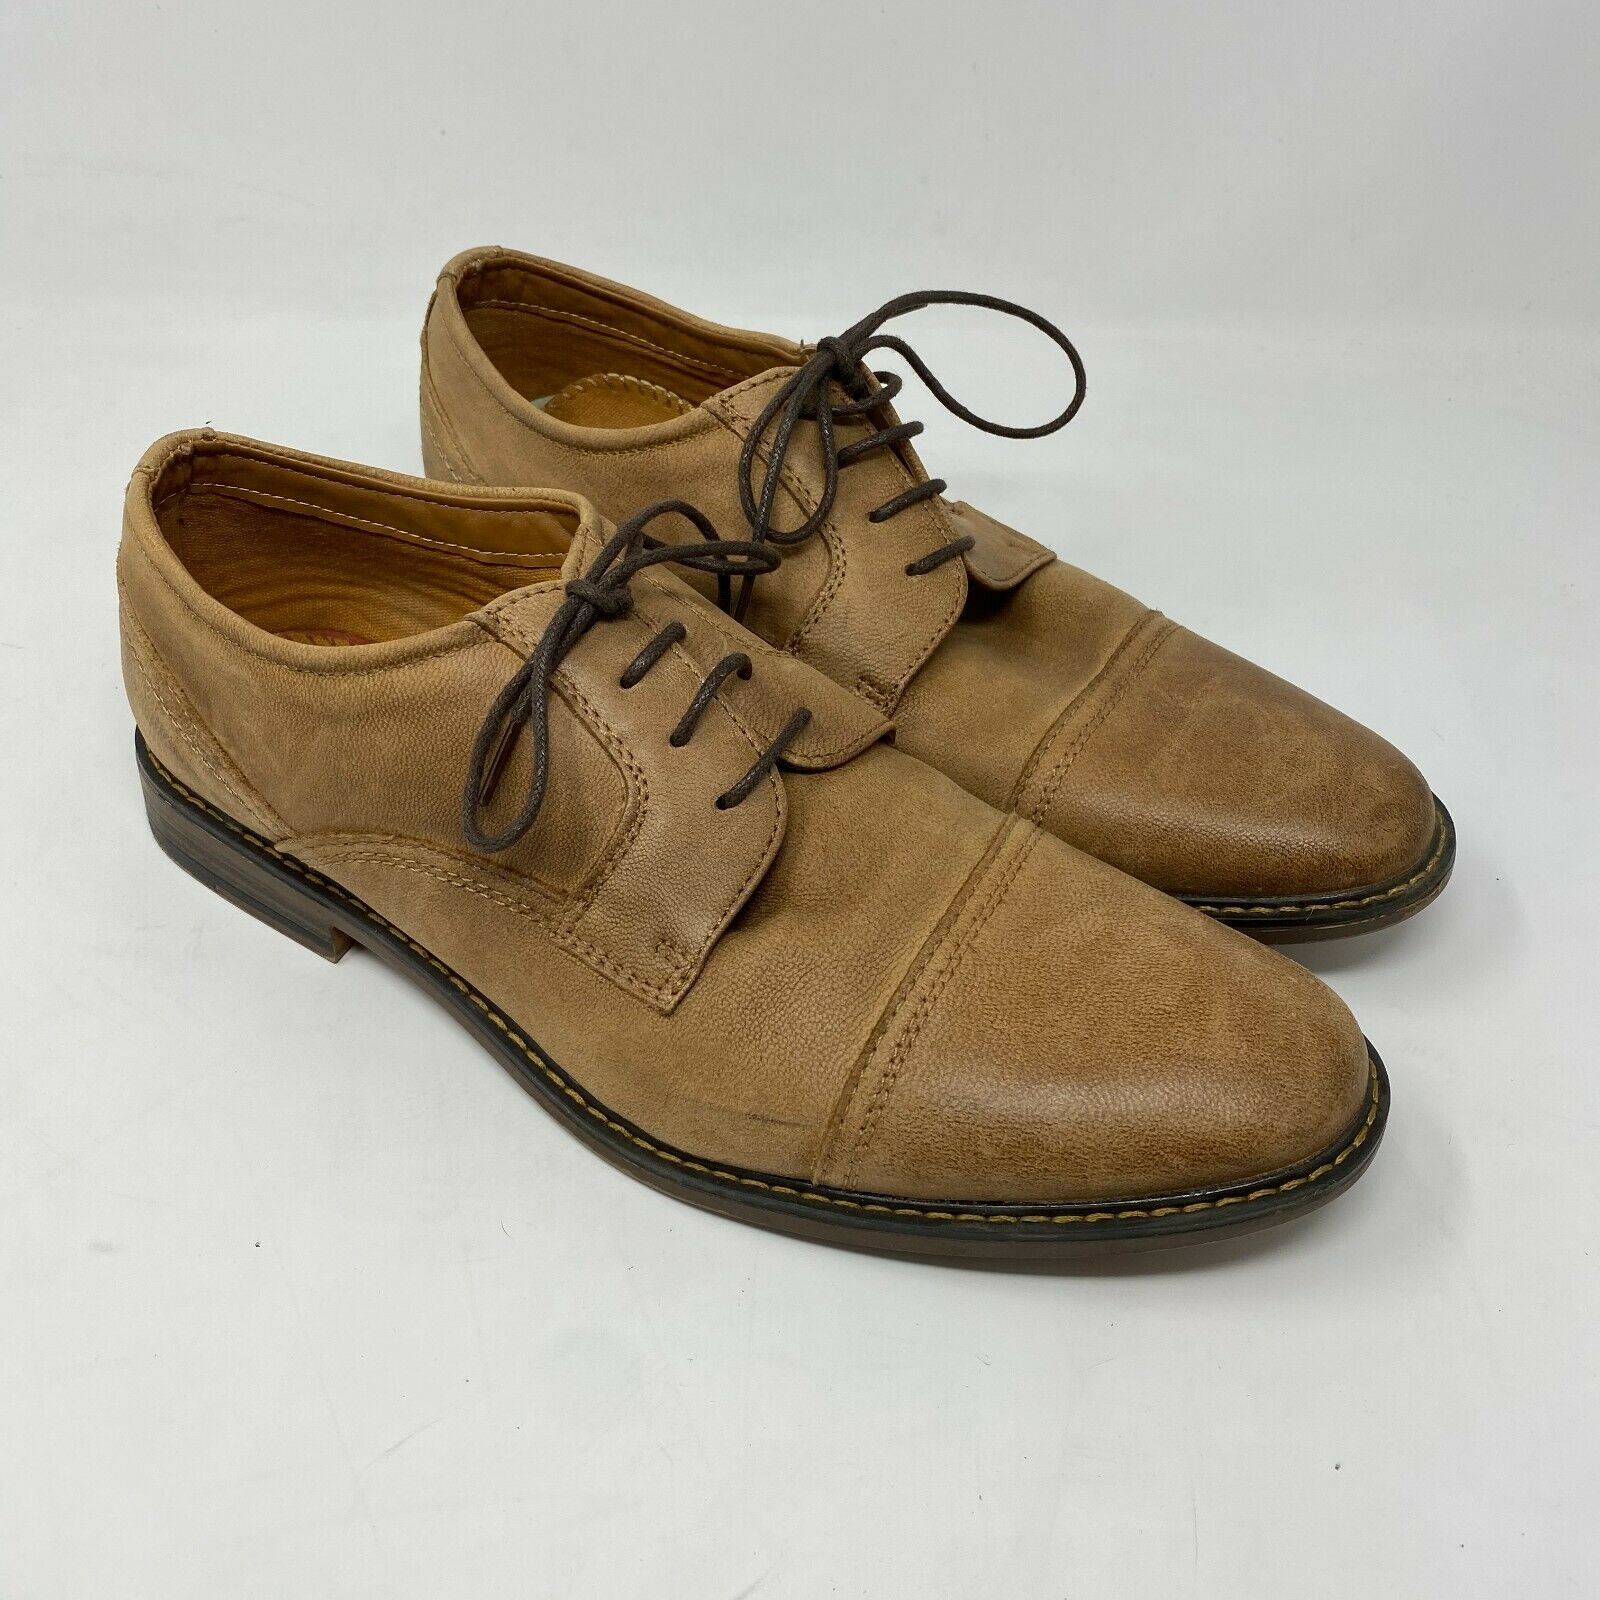 J75 by jump Paulson cap toe oxford shoes sz 10 brown Leather